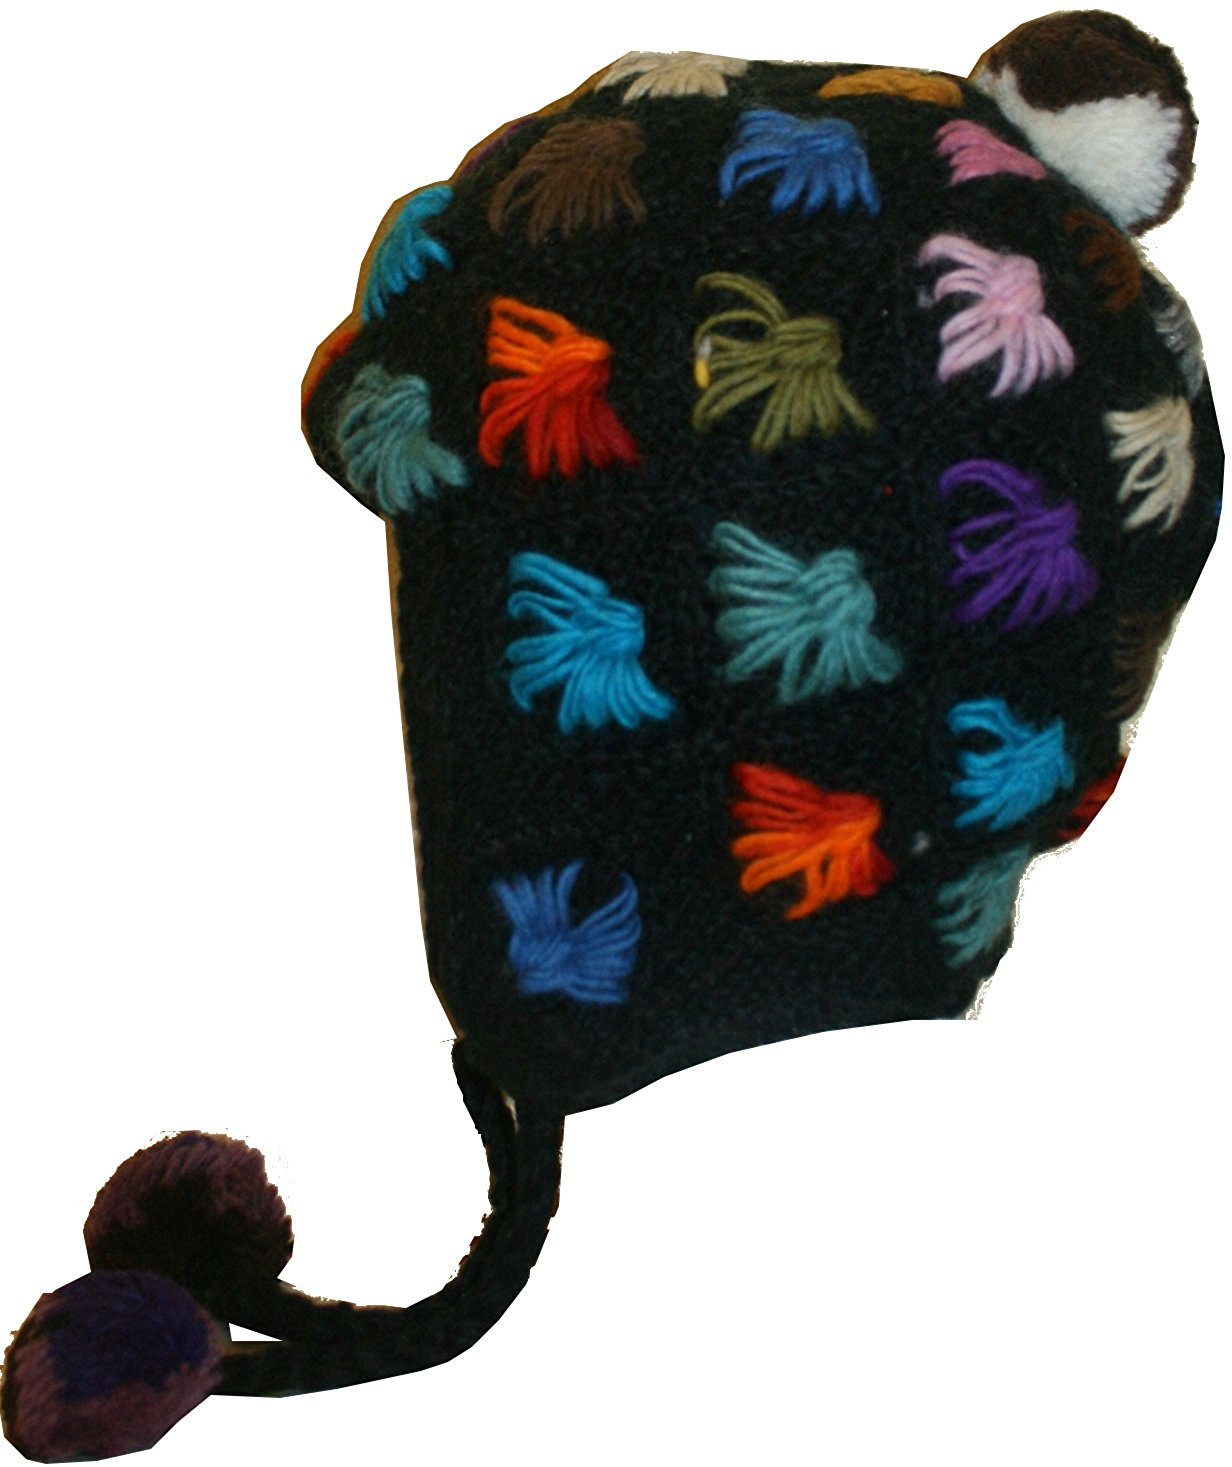 Highland Wool Knit Beanie Fleece Earflap Beanies - Agan Traders, Black Multi 2